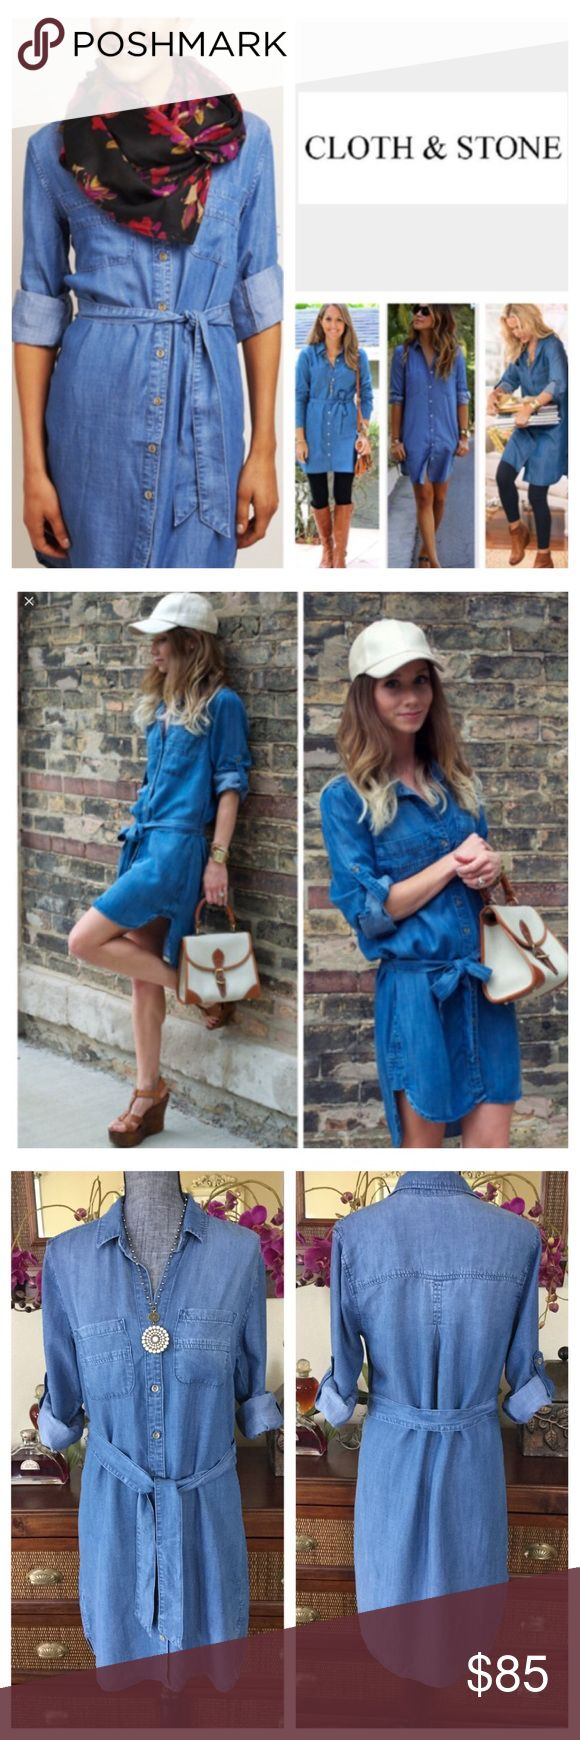 """🆕Anthropologie Cloth & Stone Denim Dress.  NWOT. 🆕 Anthropologie Cloth & Stone Buttondown Denim Shirt Dress, 100% tencel, machine washable, 19.5"""" armpit to armpit (39"""" all around), 19.5"""" arm inseam, 35.5"""" shortest length, 40"""" longest length, long sleeves, rolled tab sleeves, high low curved hem, belt loops with belt, two chest pockets, collared, fading, buttoned cuffs, measurements are approx.  New without tag, never worn.  NO TRADES Anthropologie Dresses Mini"""